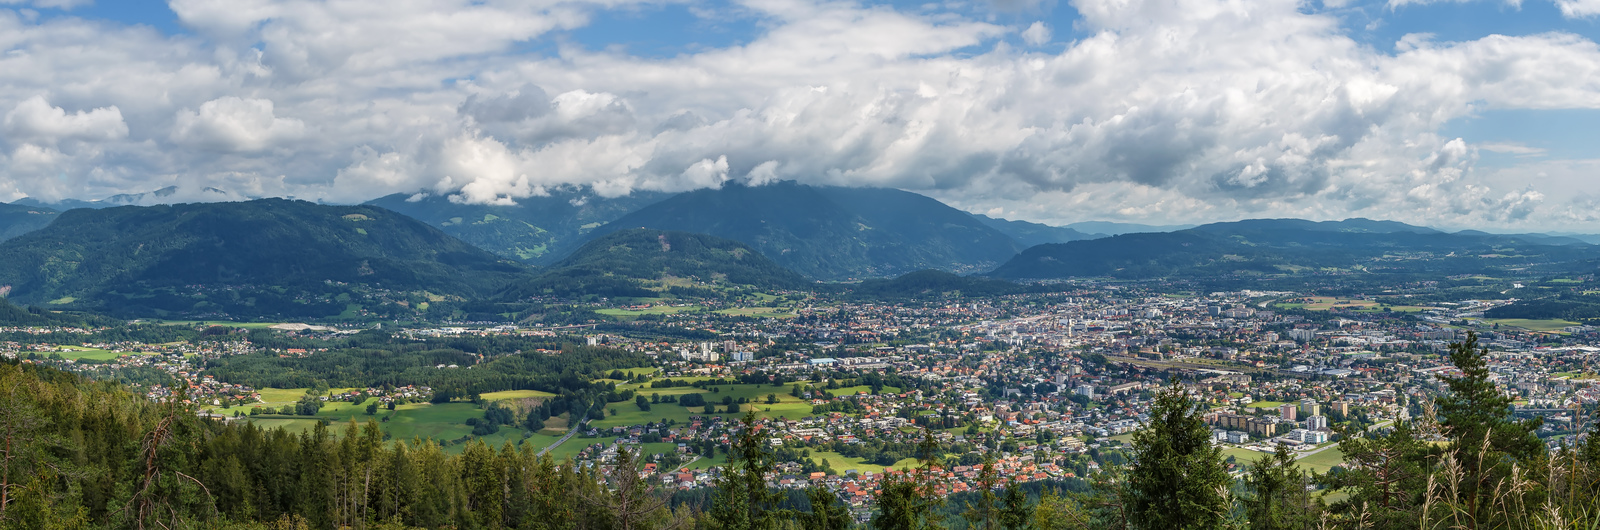 villach fuernitz city header 1